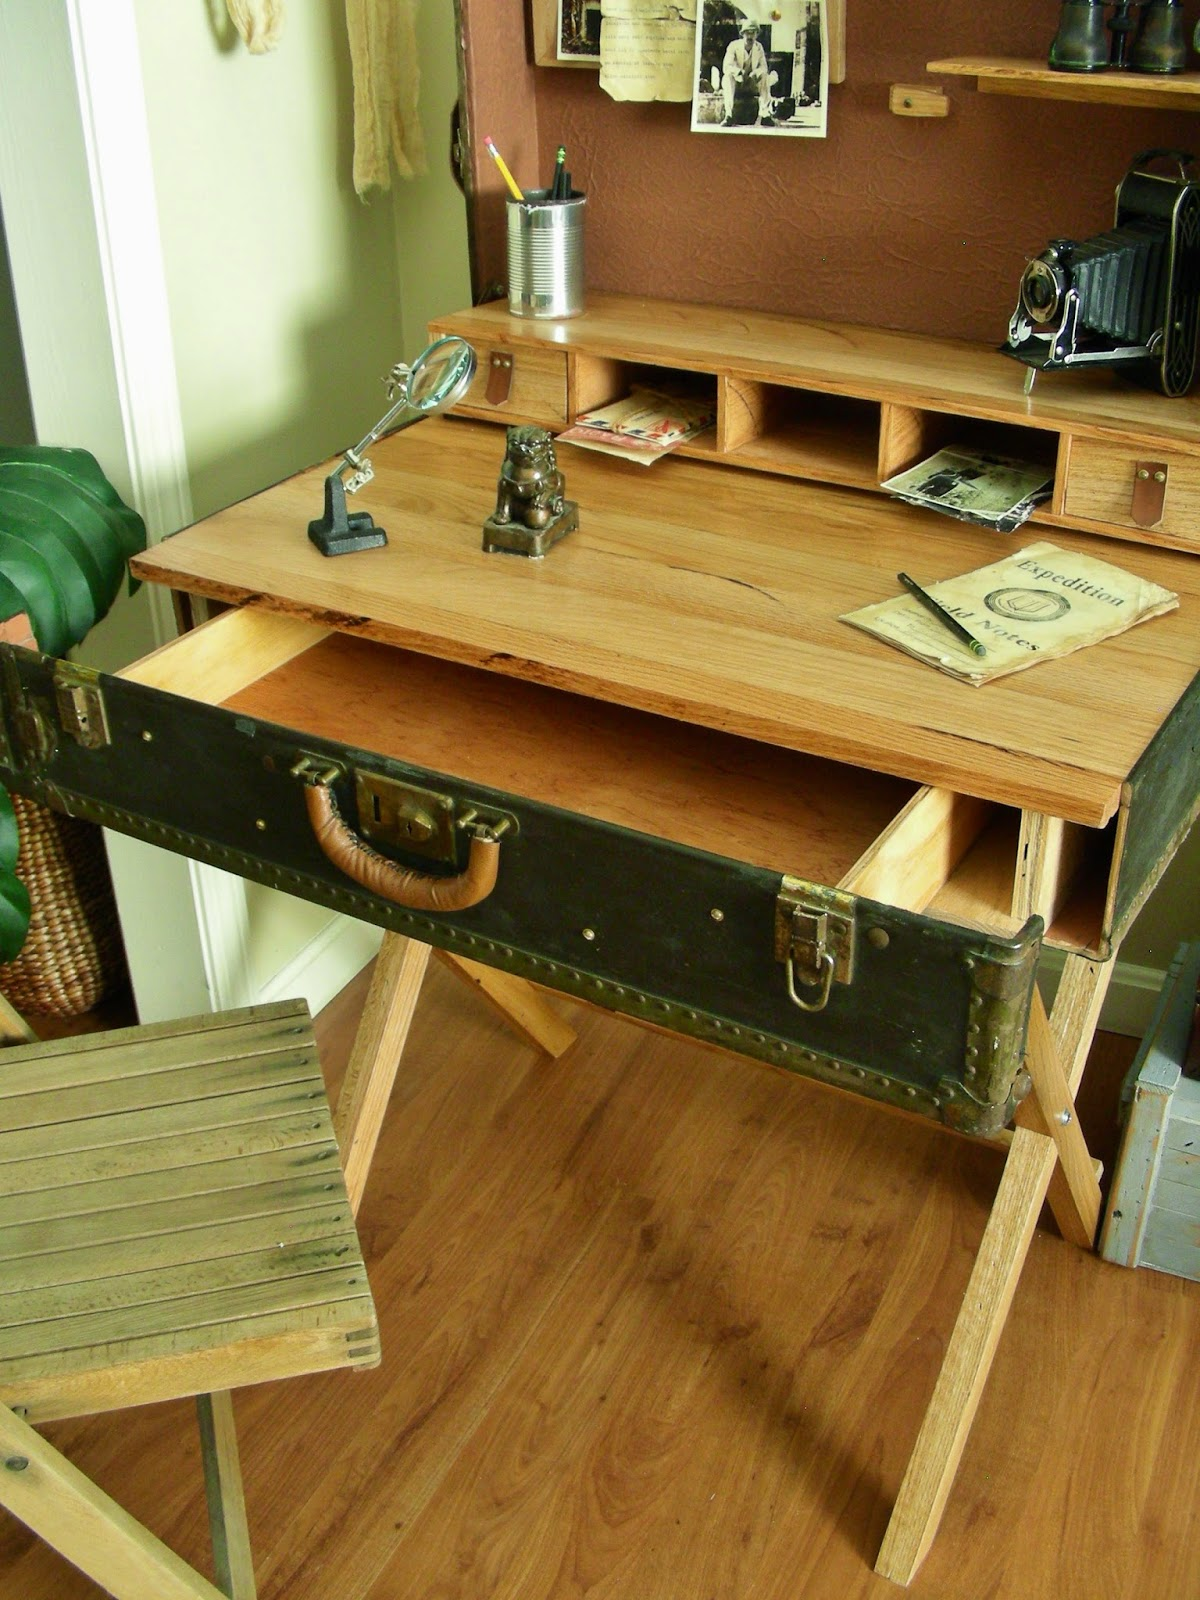 Destinations vintage upcycled repurposed stuff for Table valise